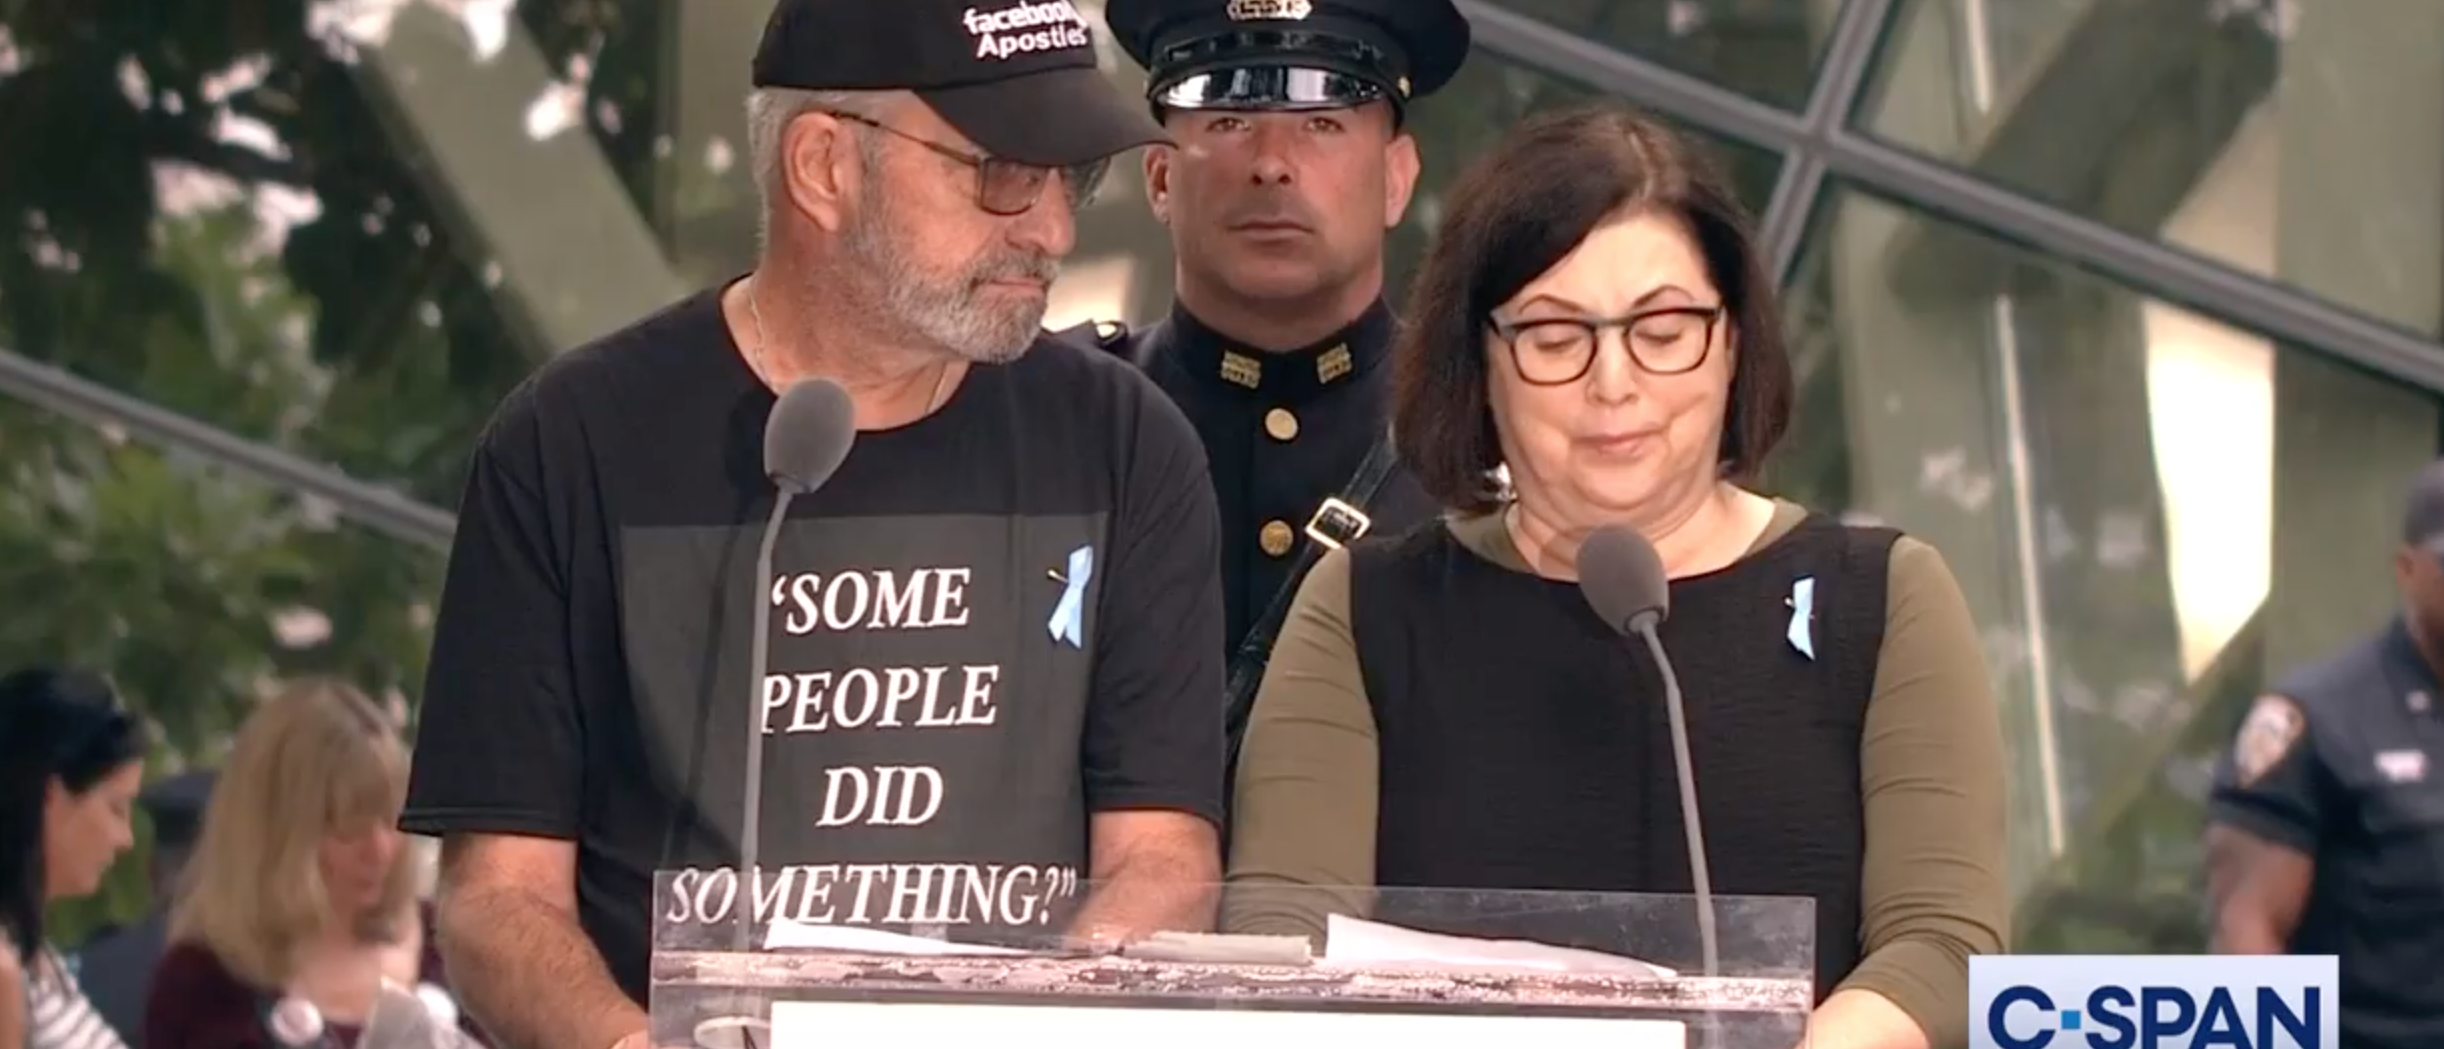 Son Of 9/11 Victim Reads Names Of Those Killed Wearing 'Some People Did Something' Shirt